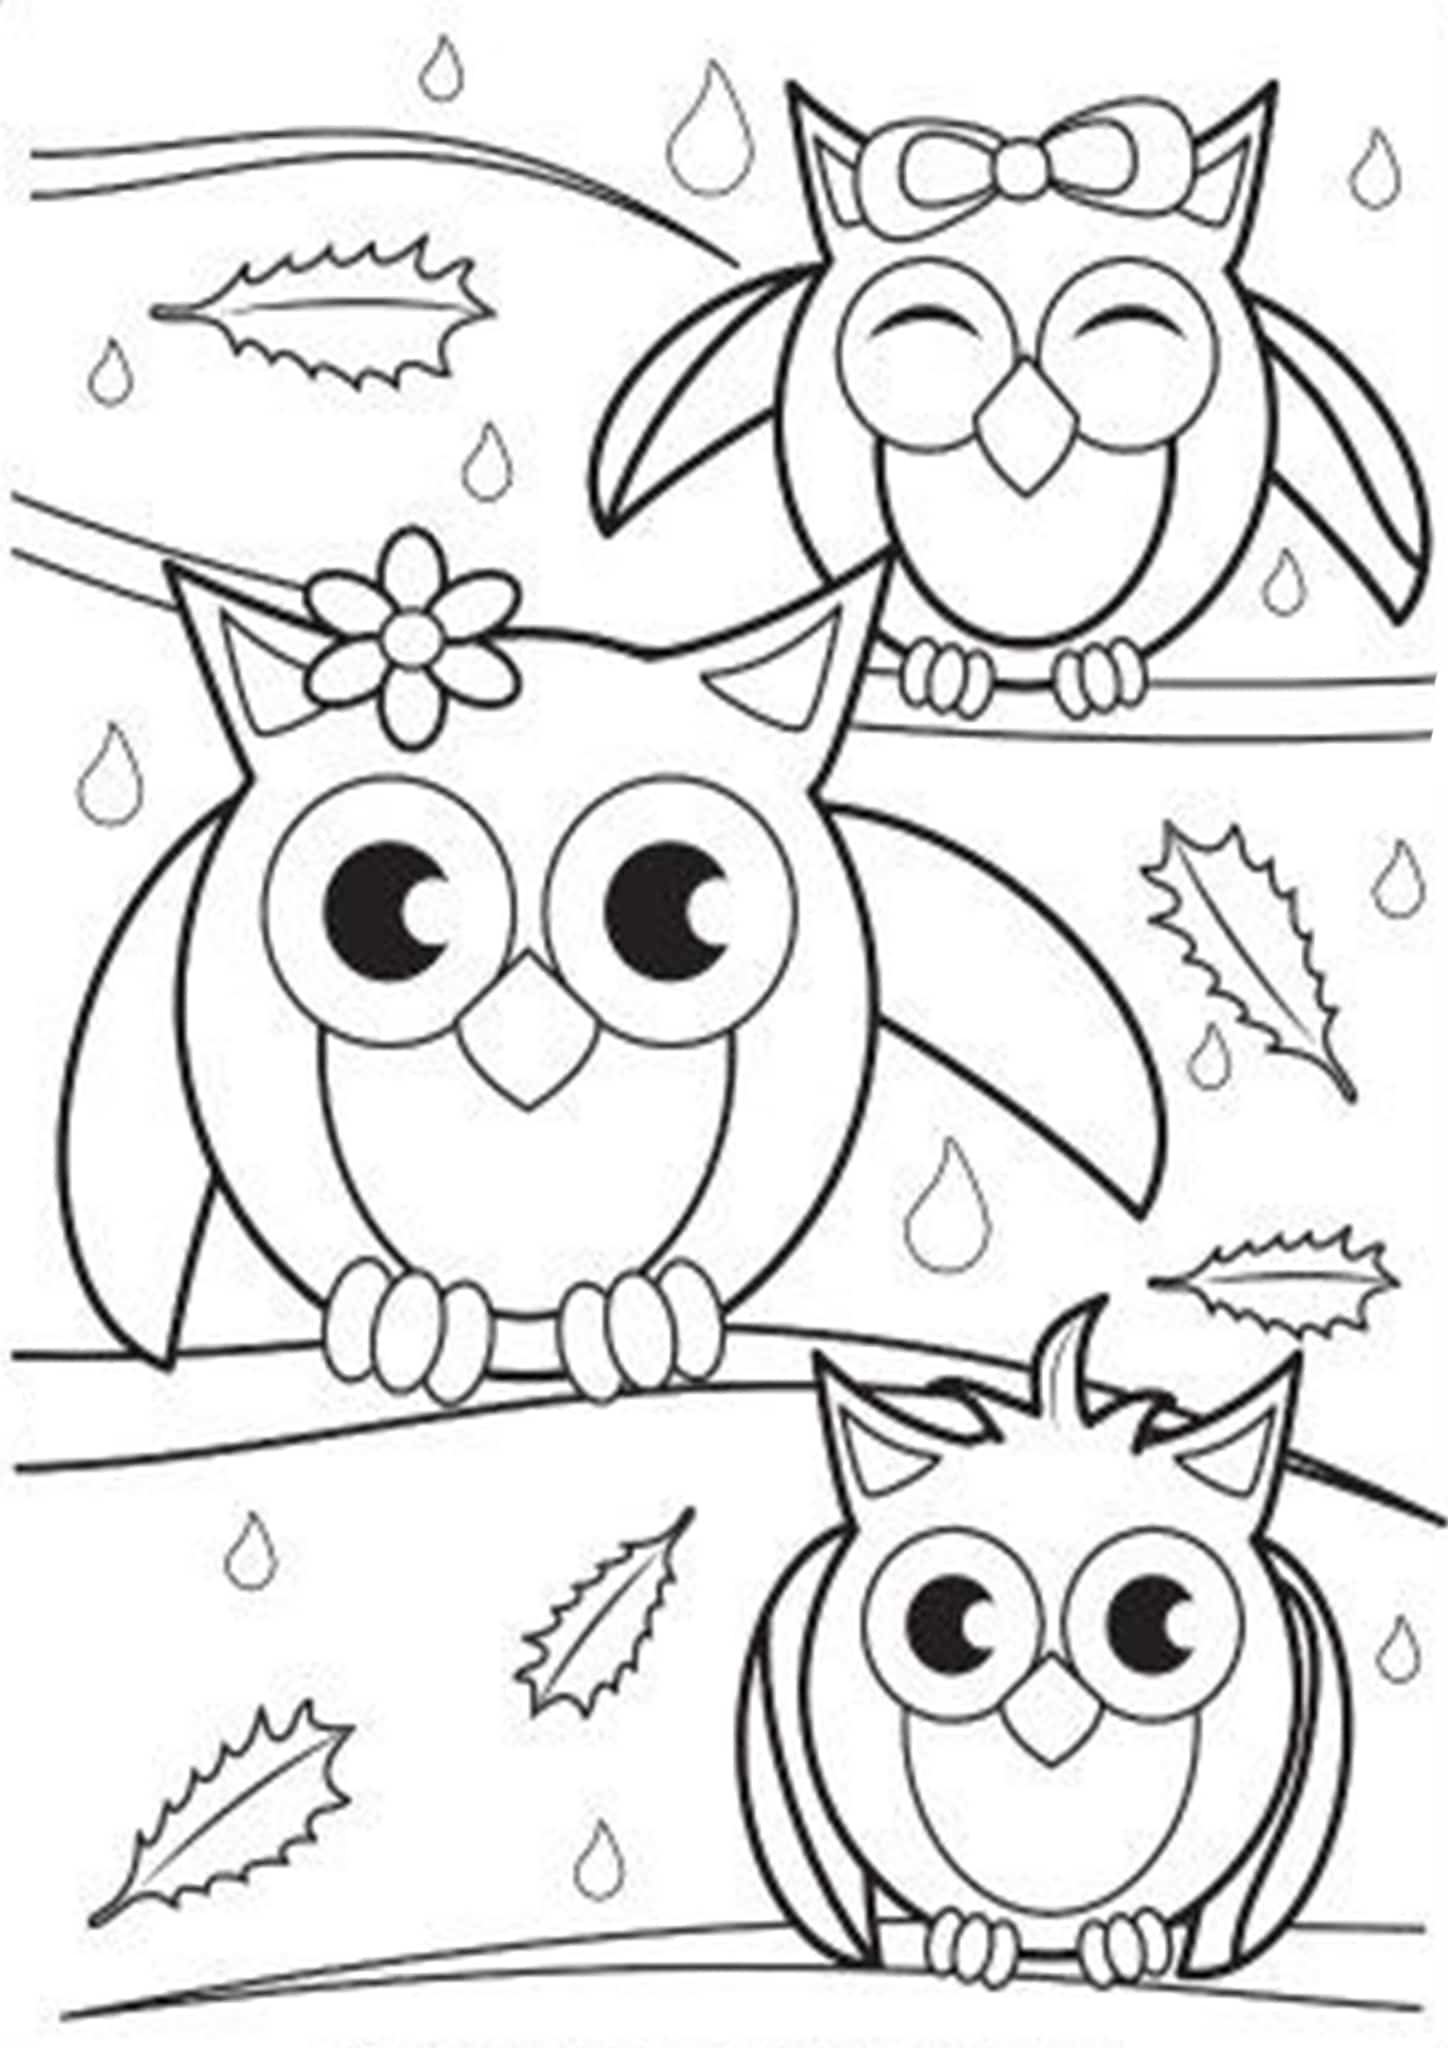 fun coloring pictures free printable care bear coloring pages for kids fun pictures coloring